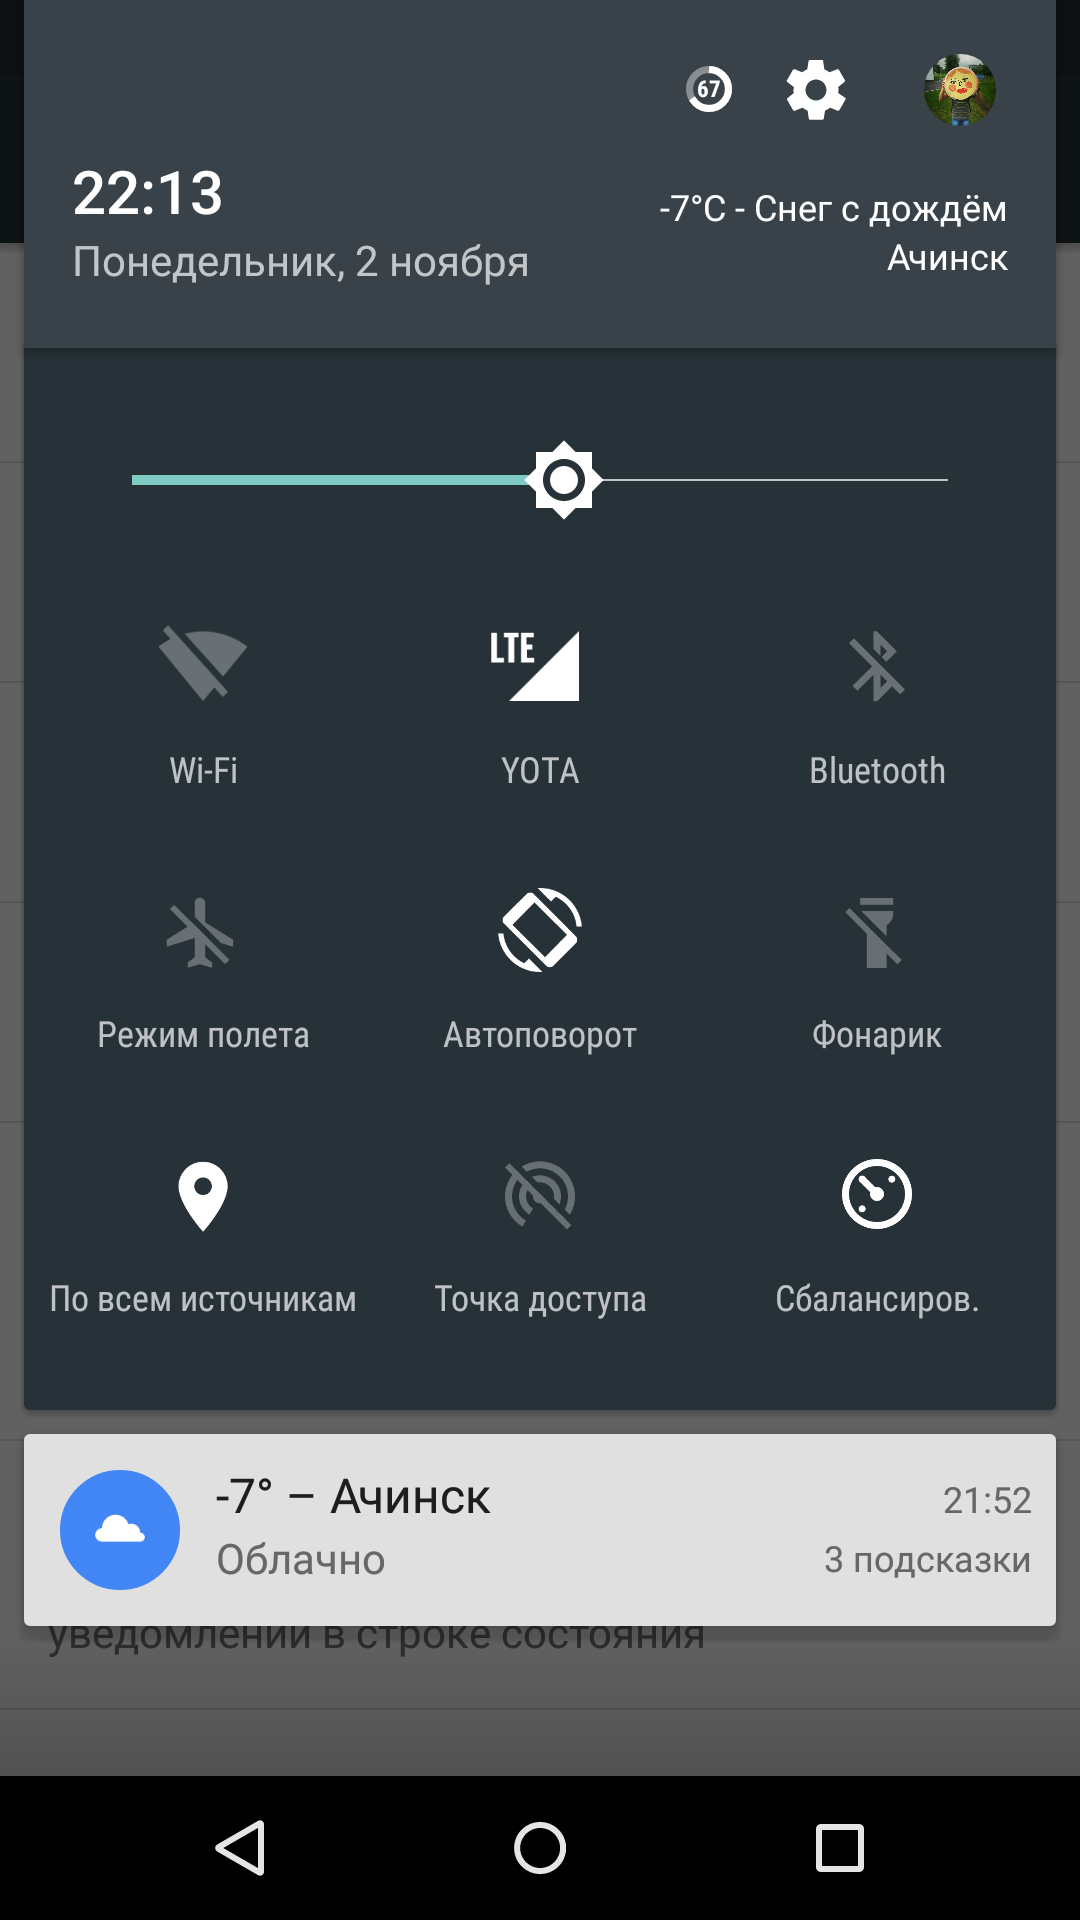 Полный обзор Cyanogen OS 12.1 (Android 5.1.1 Lollipop) - 4